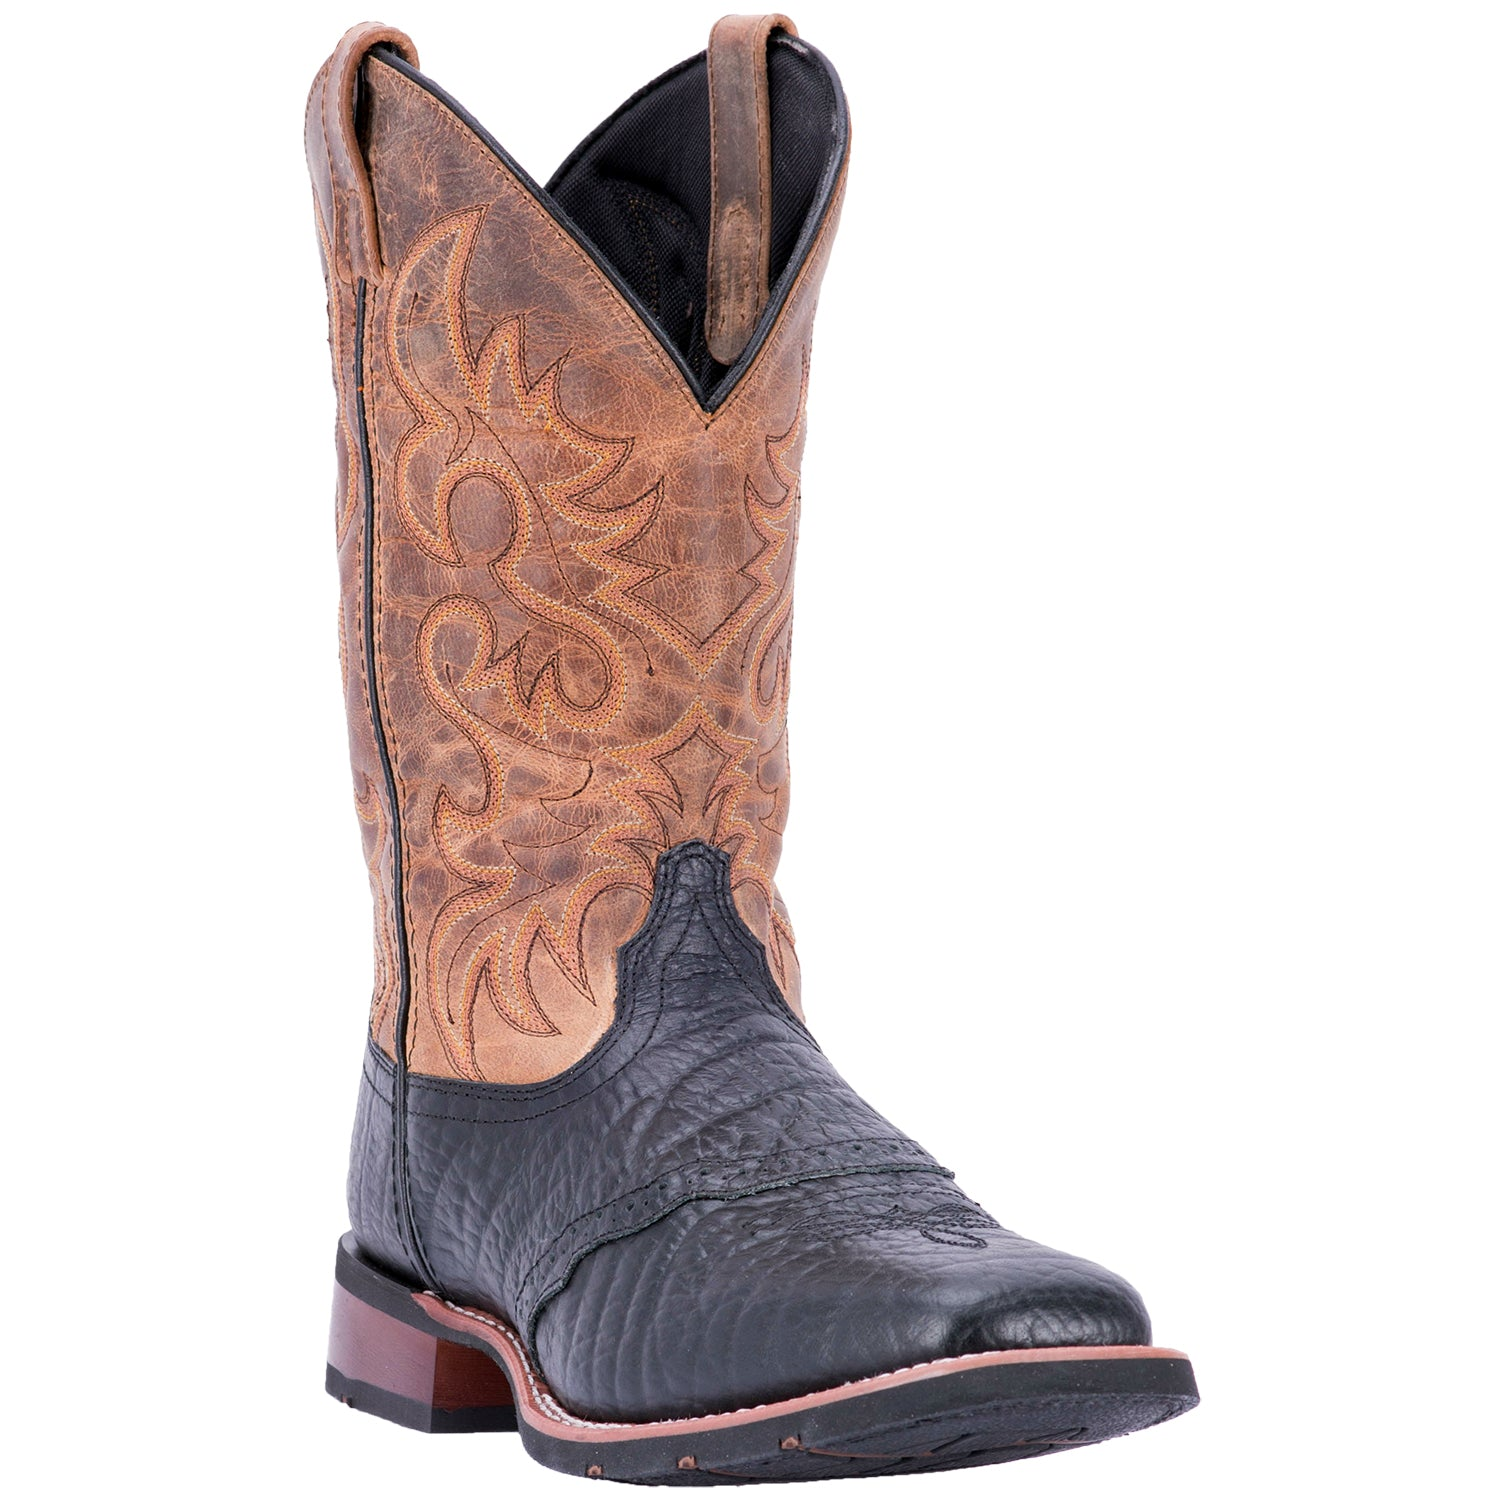 TOPEKA LEATHER BOOT 4197239586858